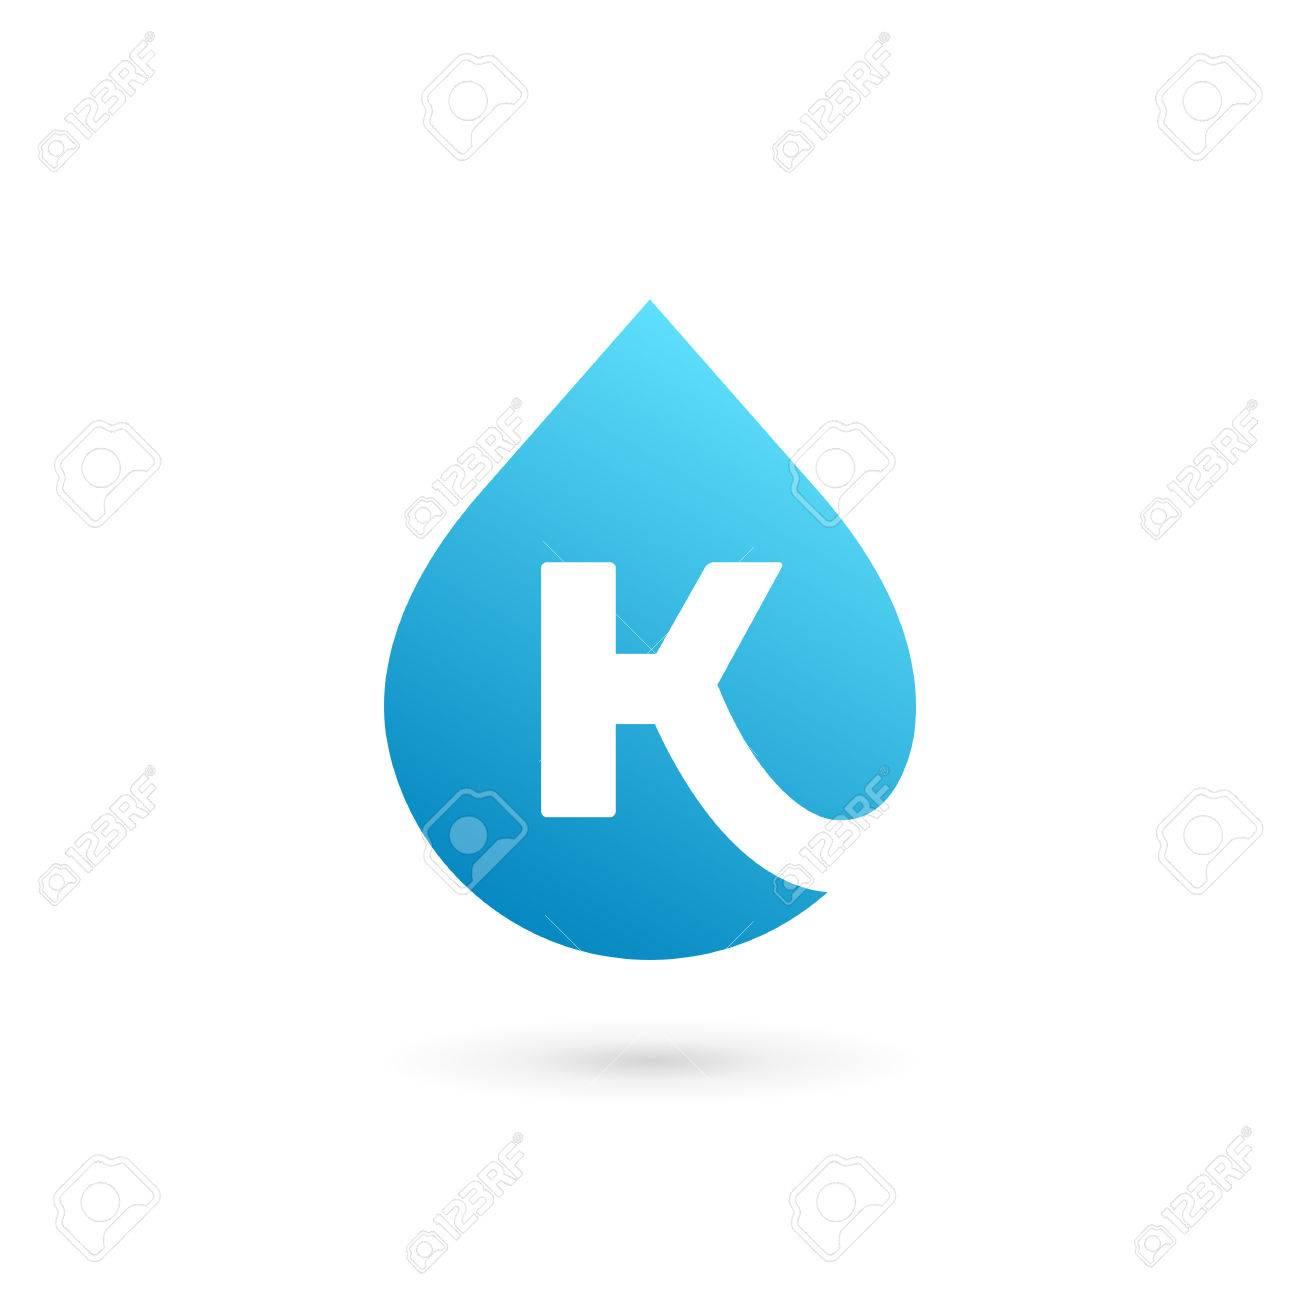 letter k water drop logo icon design template elements stock vector 75492416